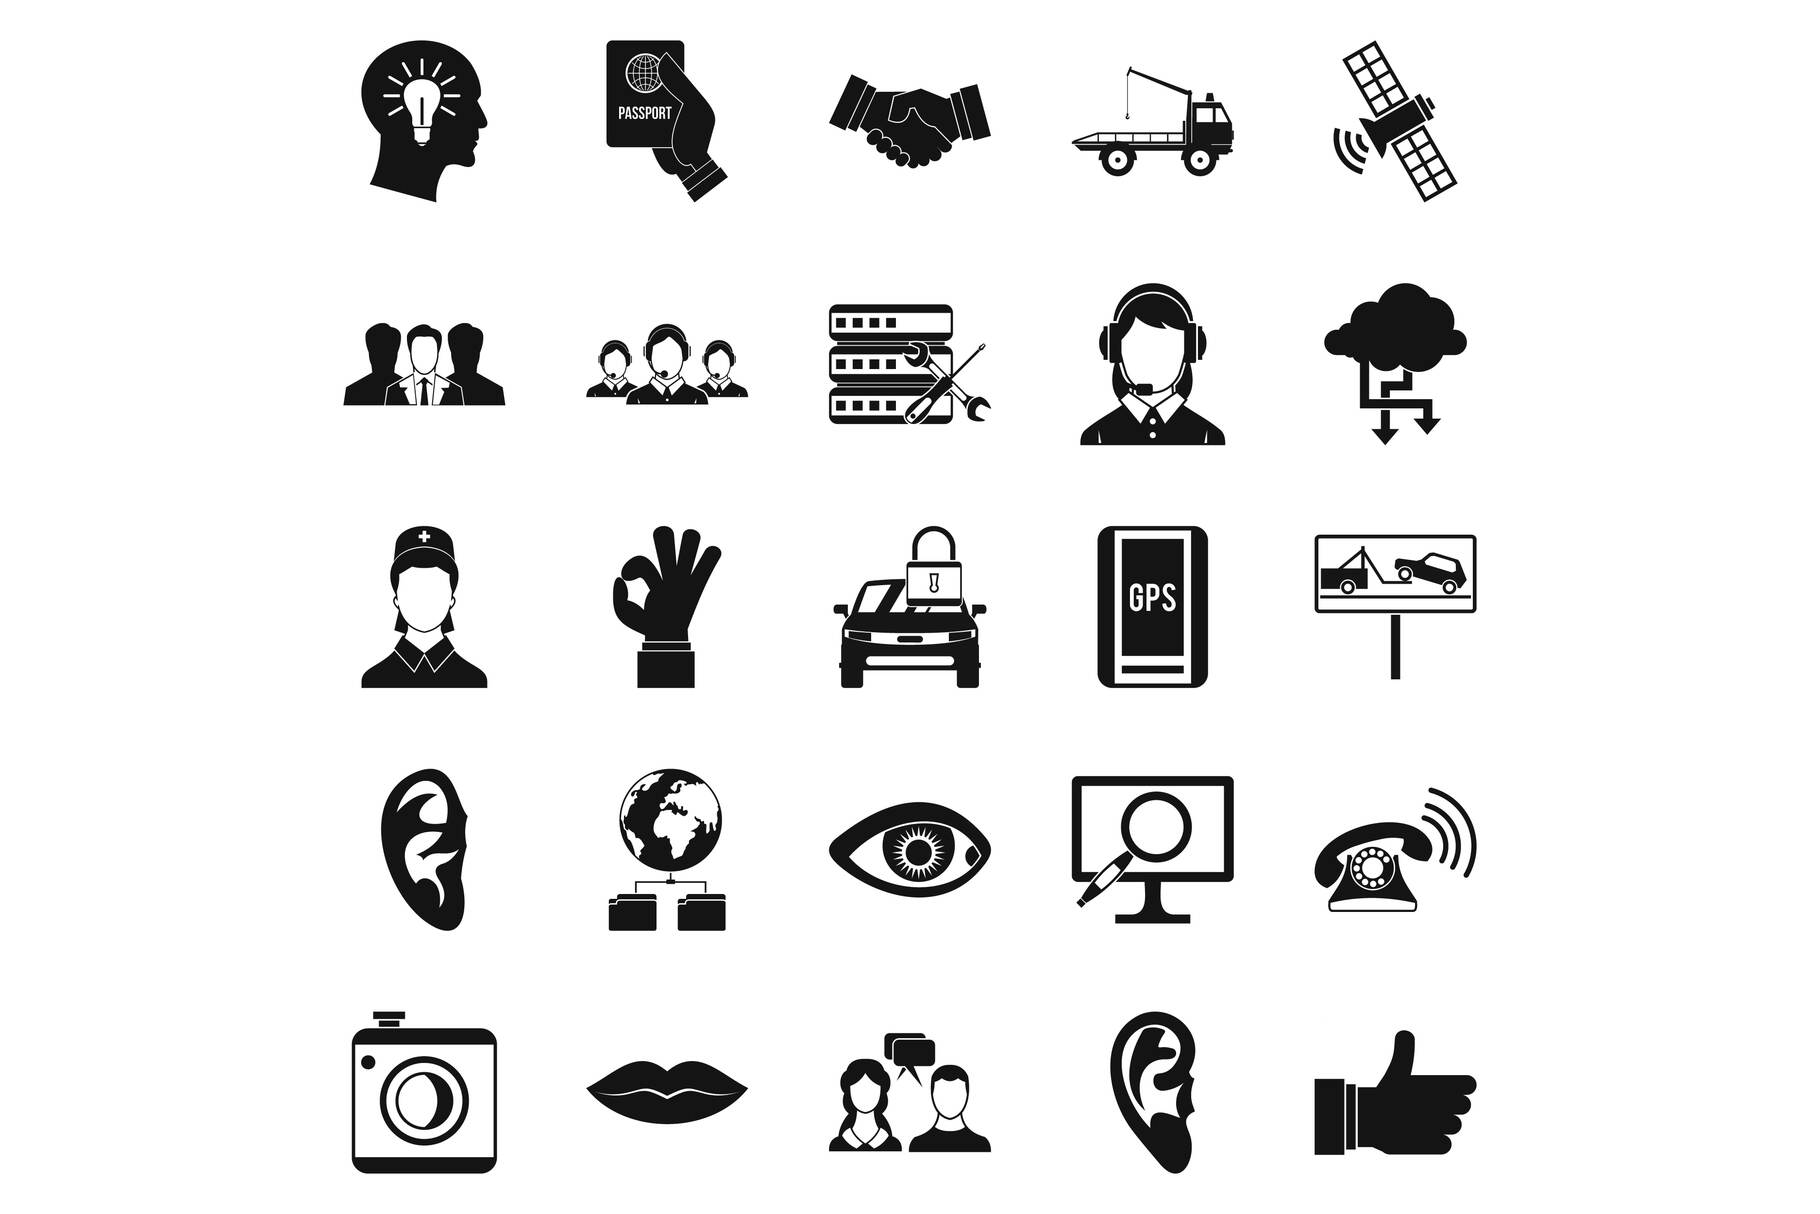 Earphones icons set, simple style example image 1